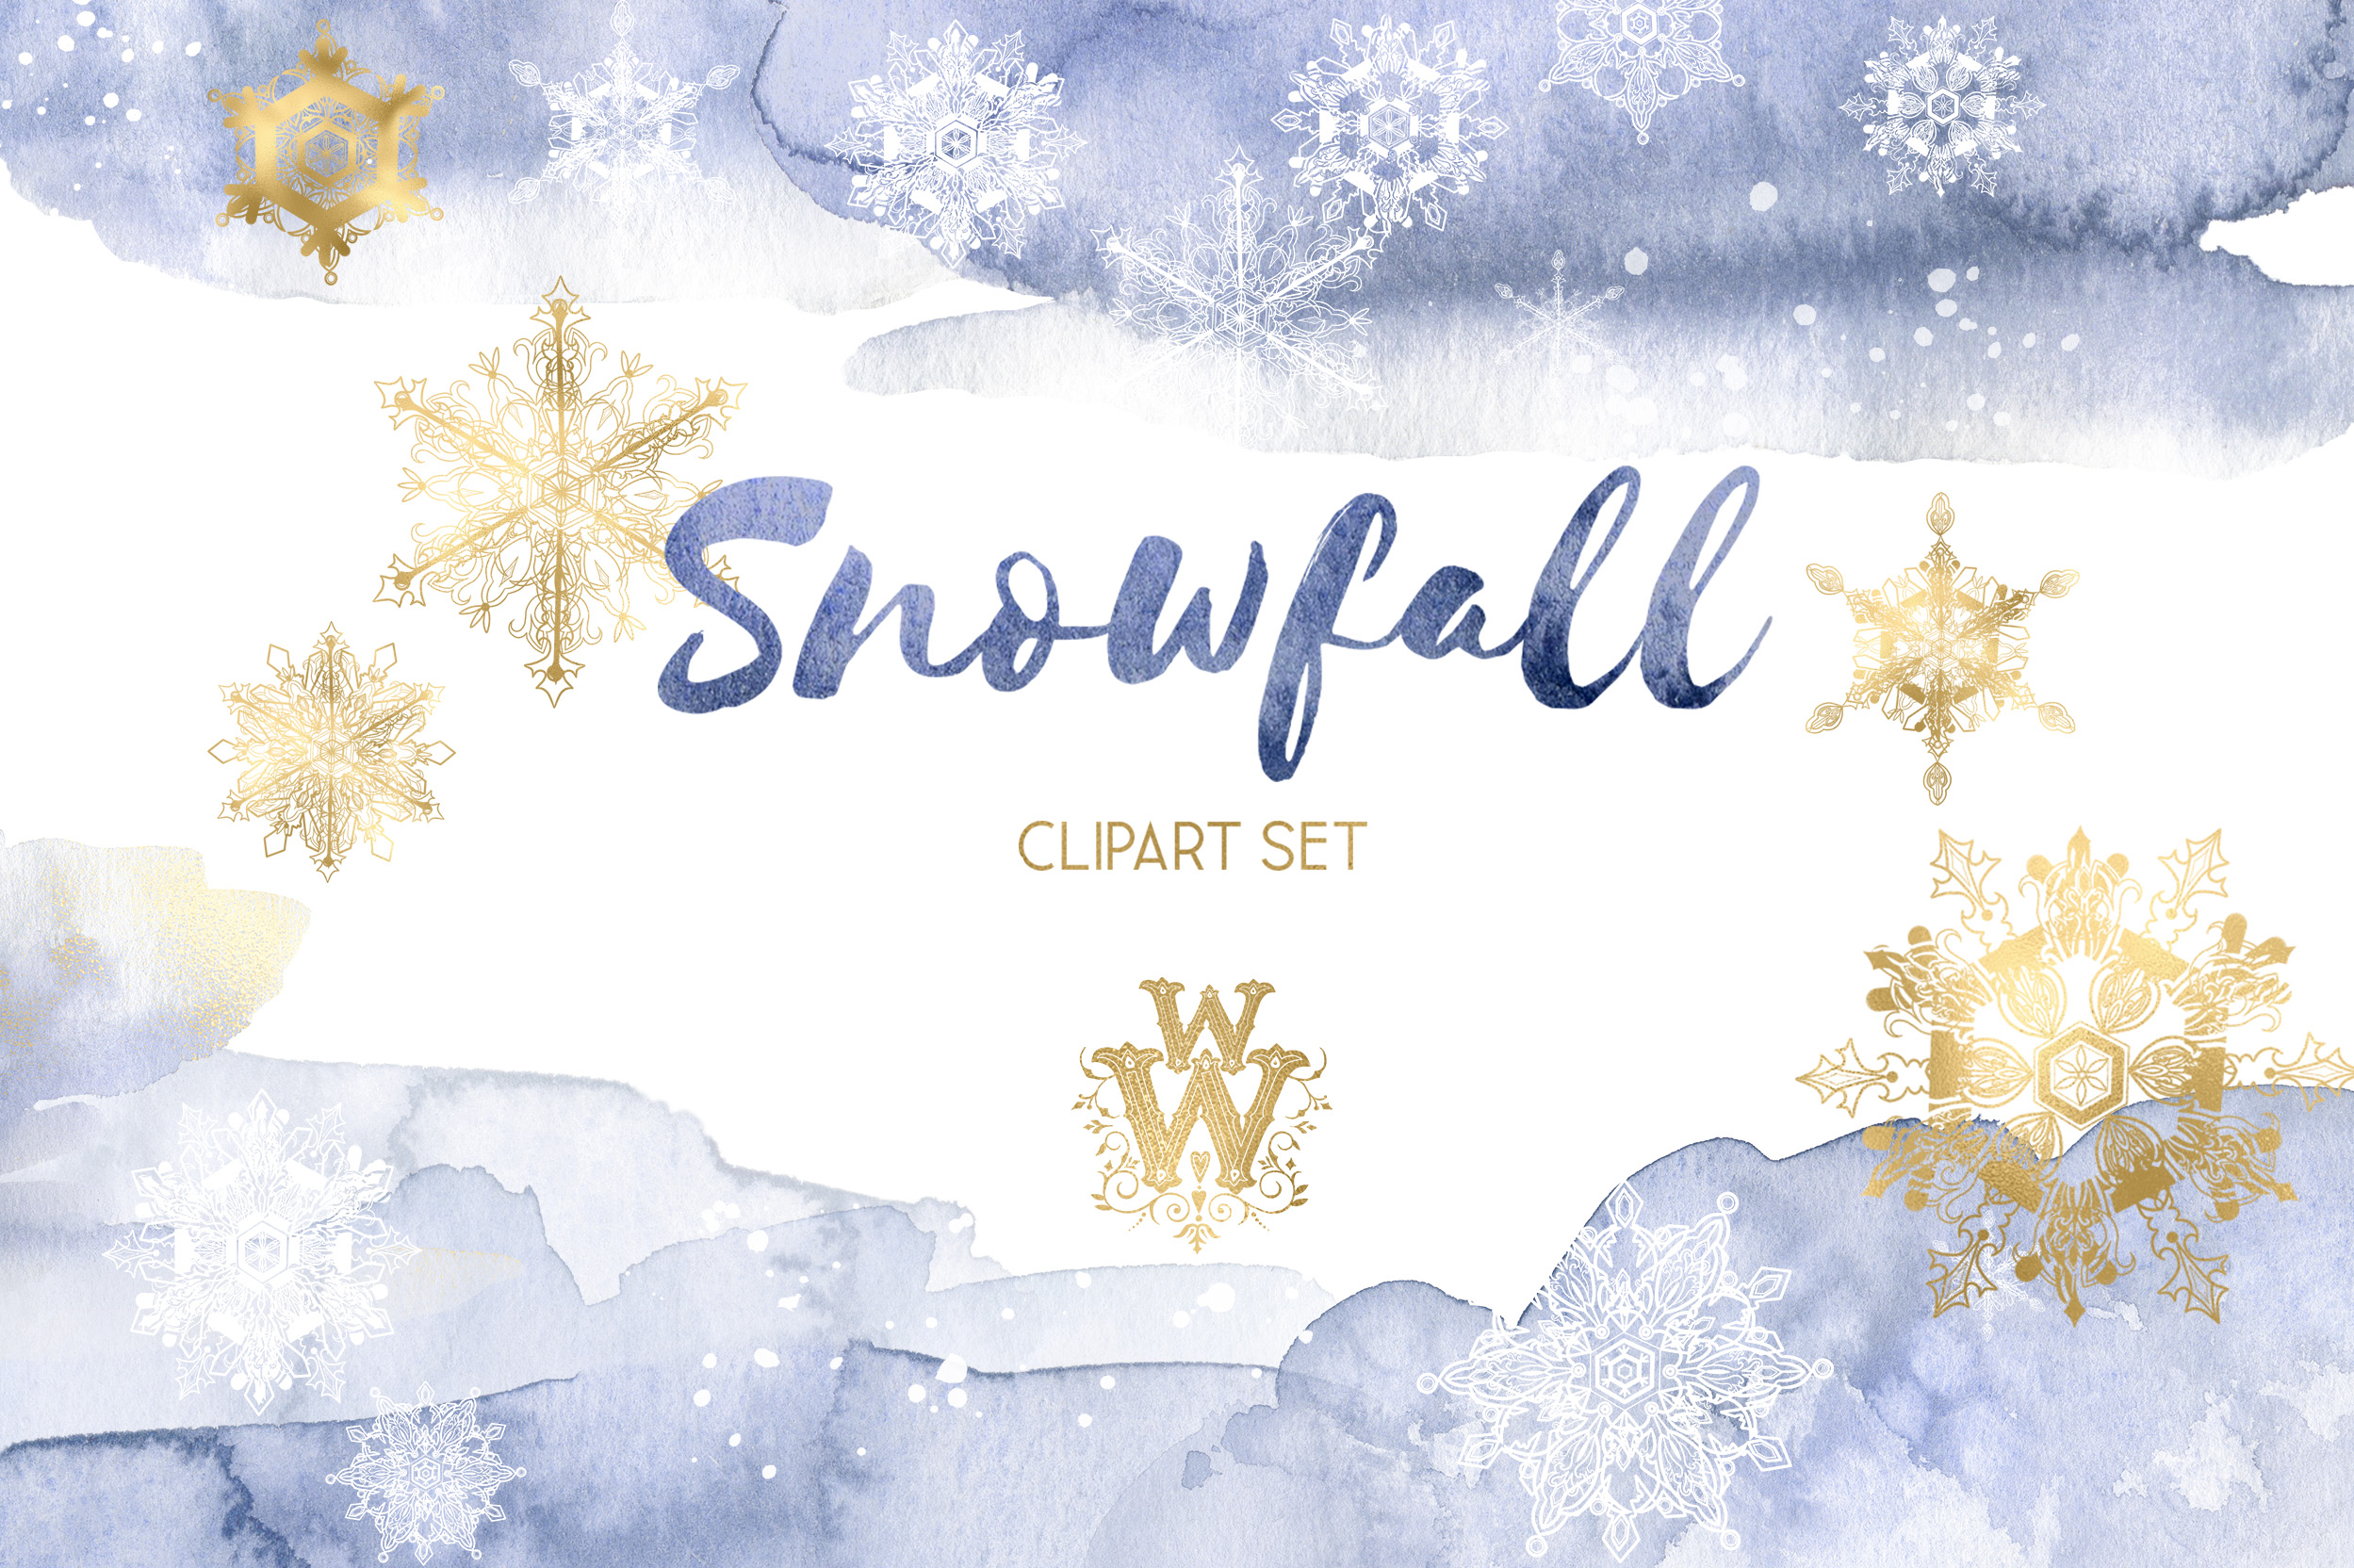 Winter snowflakes clipart set with watercolor splashes example image 1